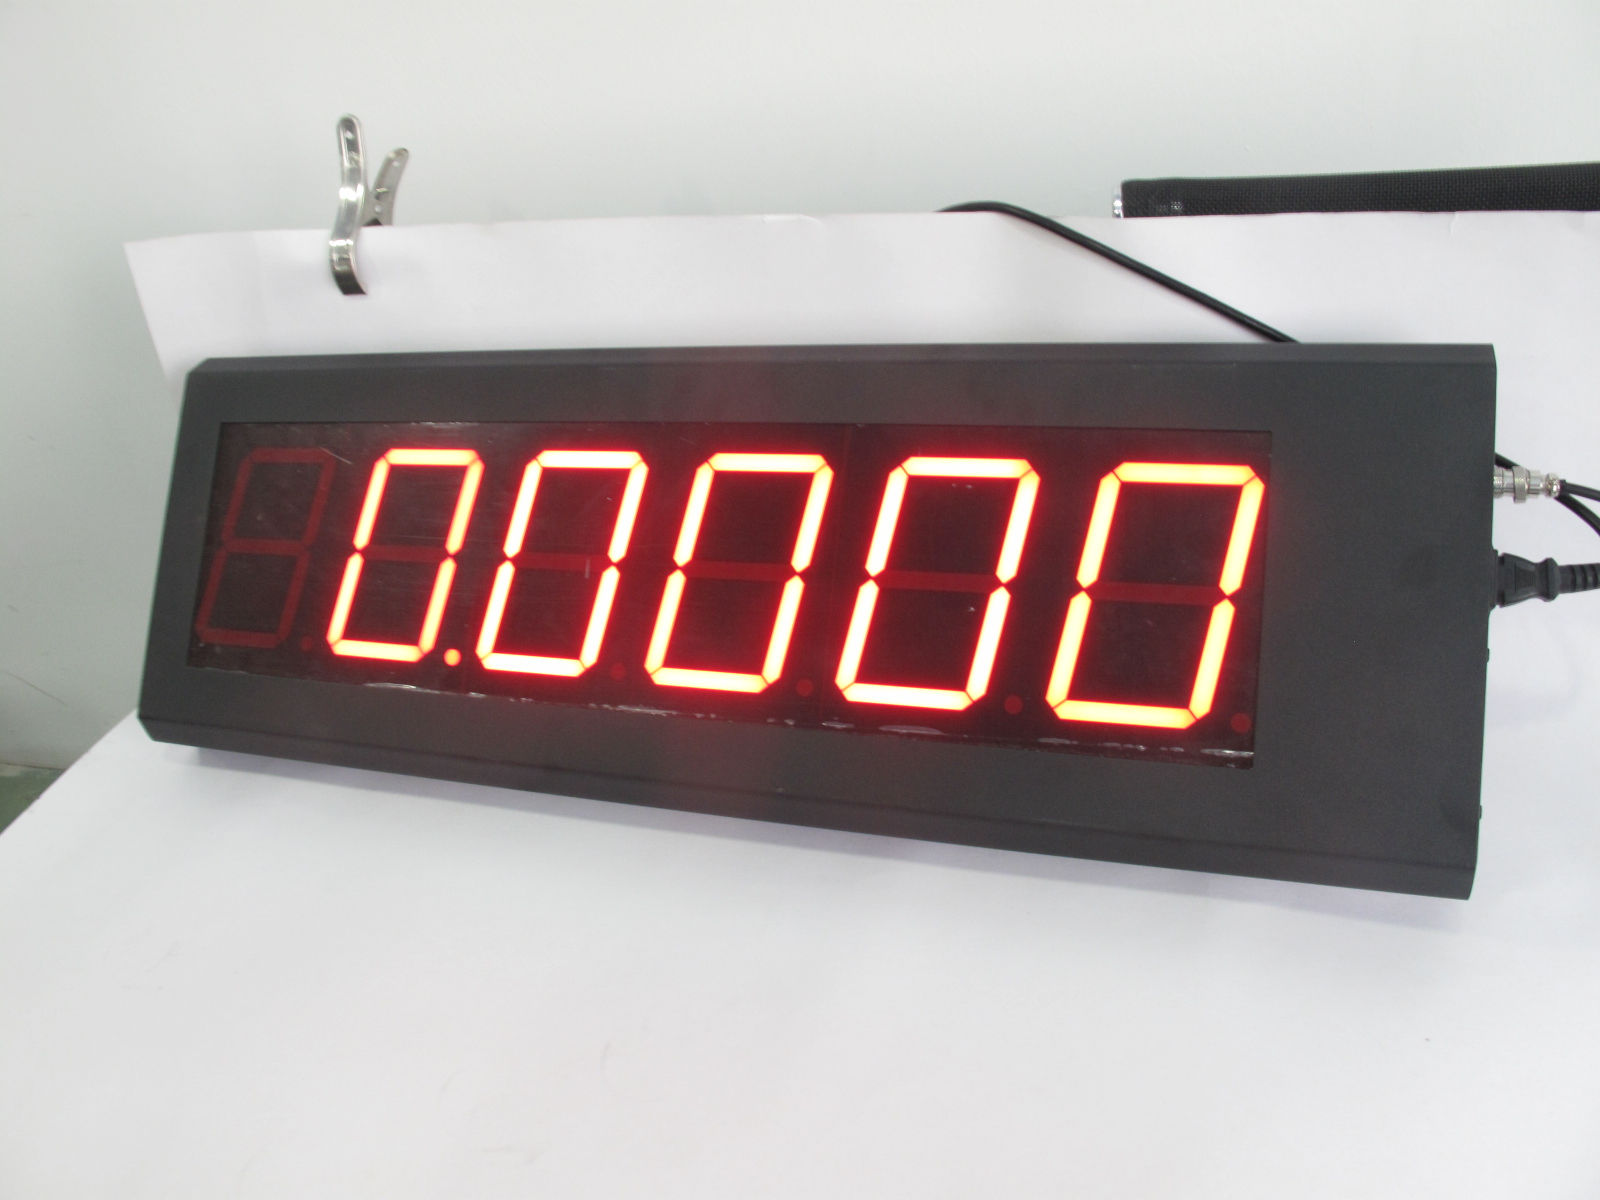 weighing Remote Display